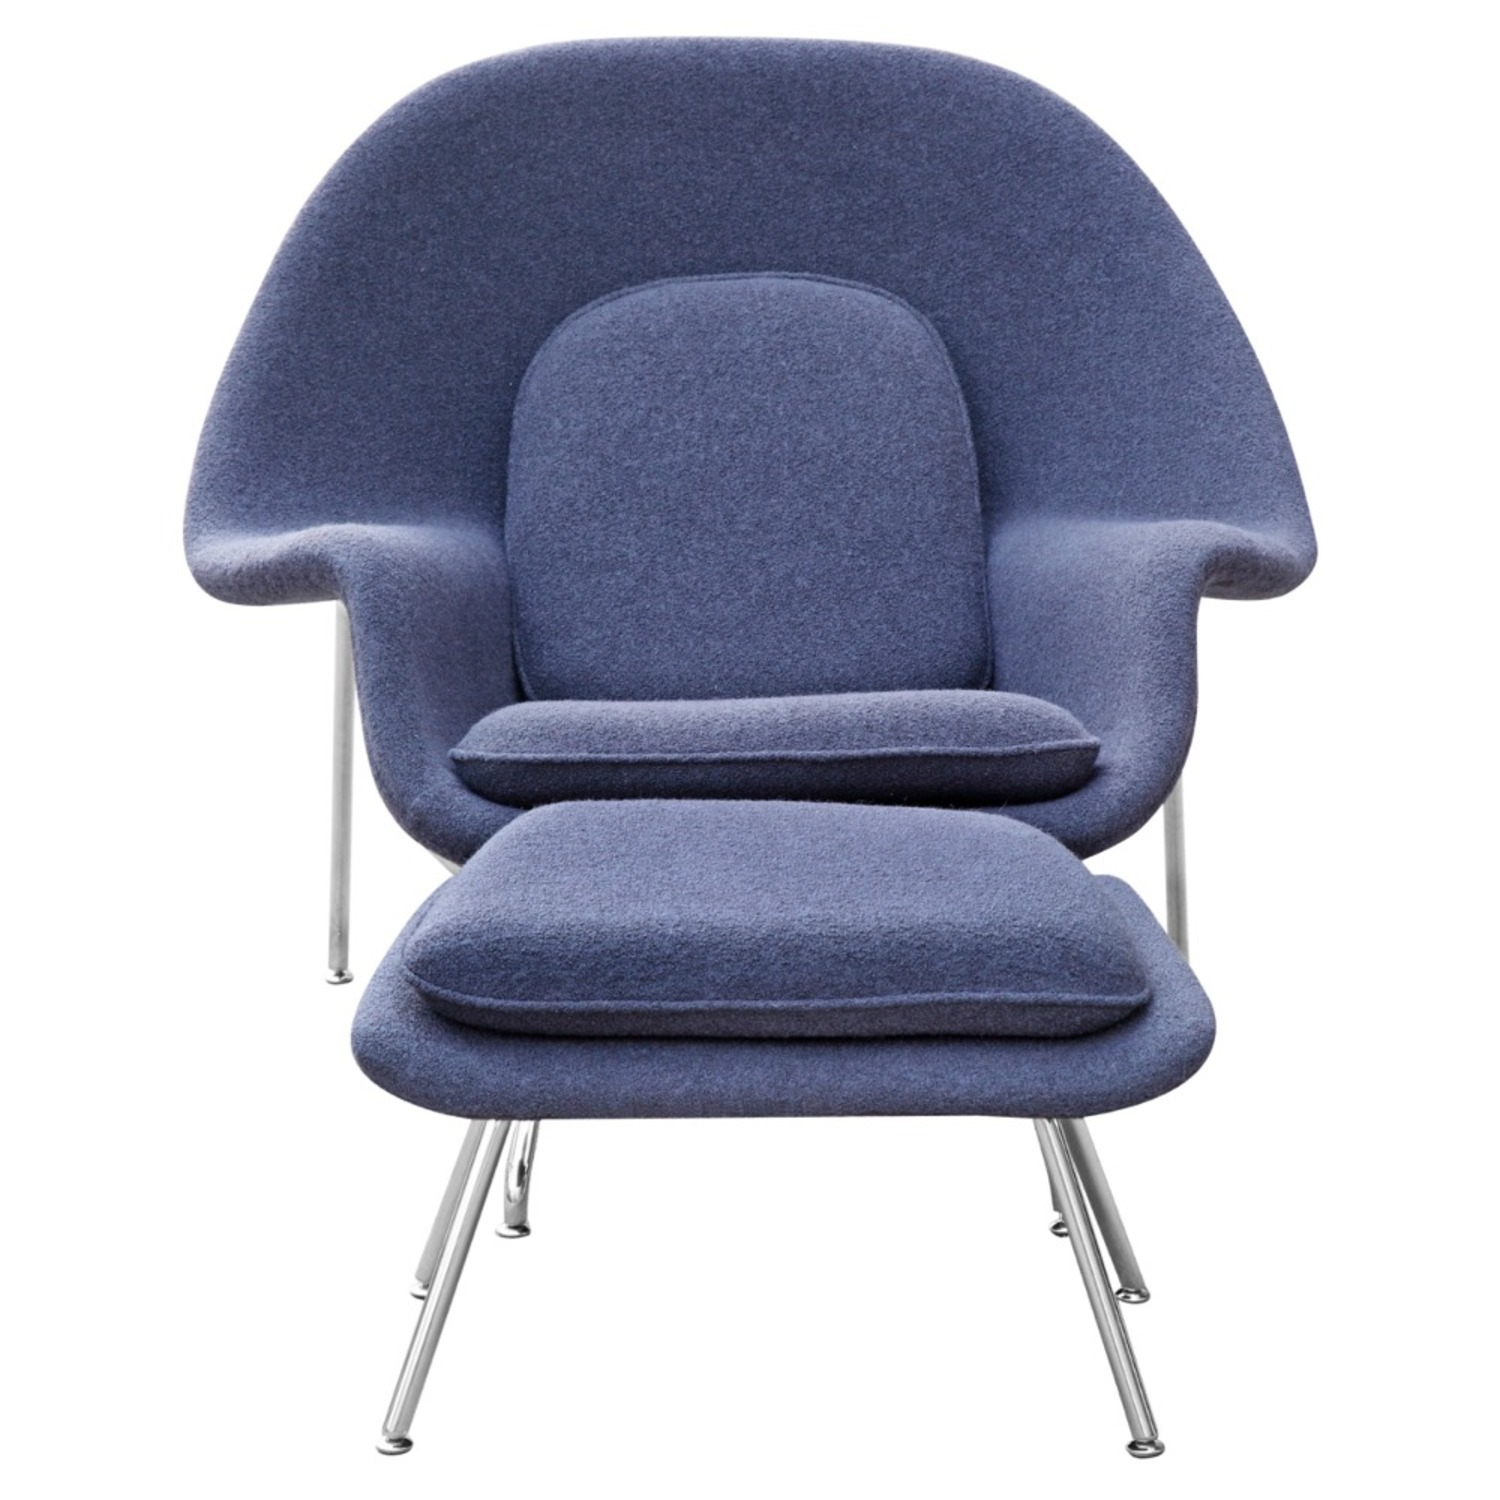 Chair & Ottoman Covered In Gray Wool Fabric - image-5